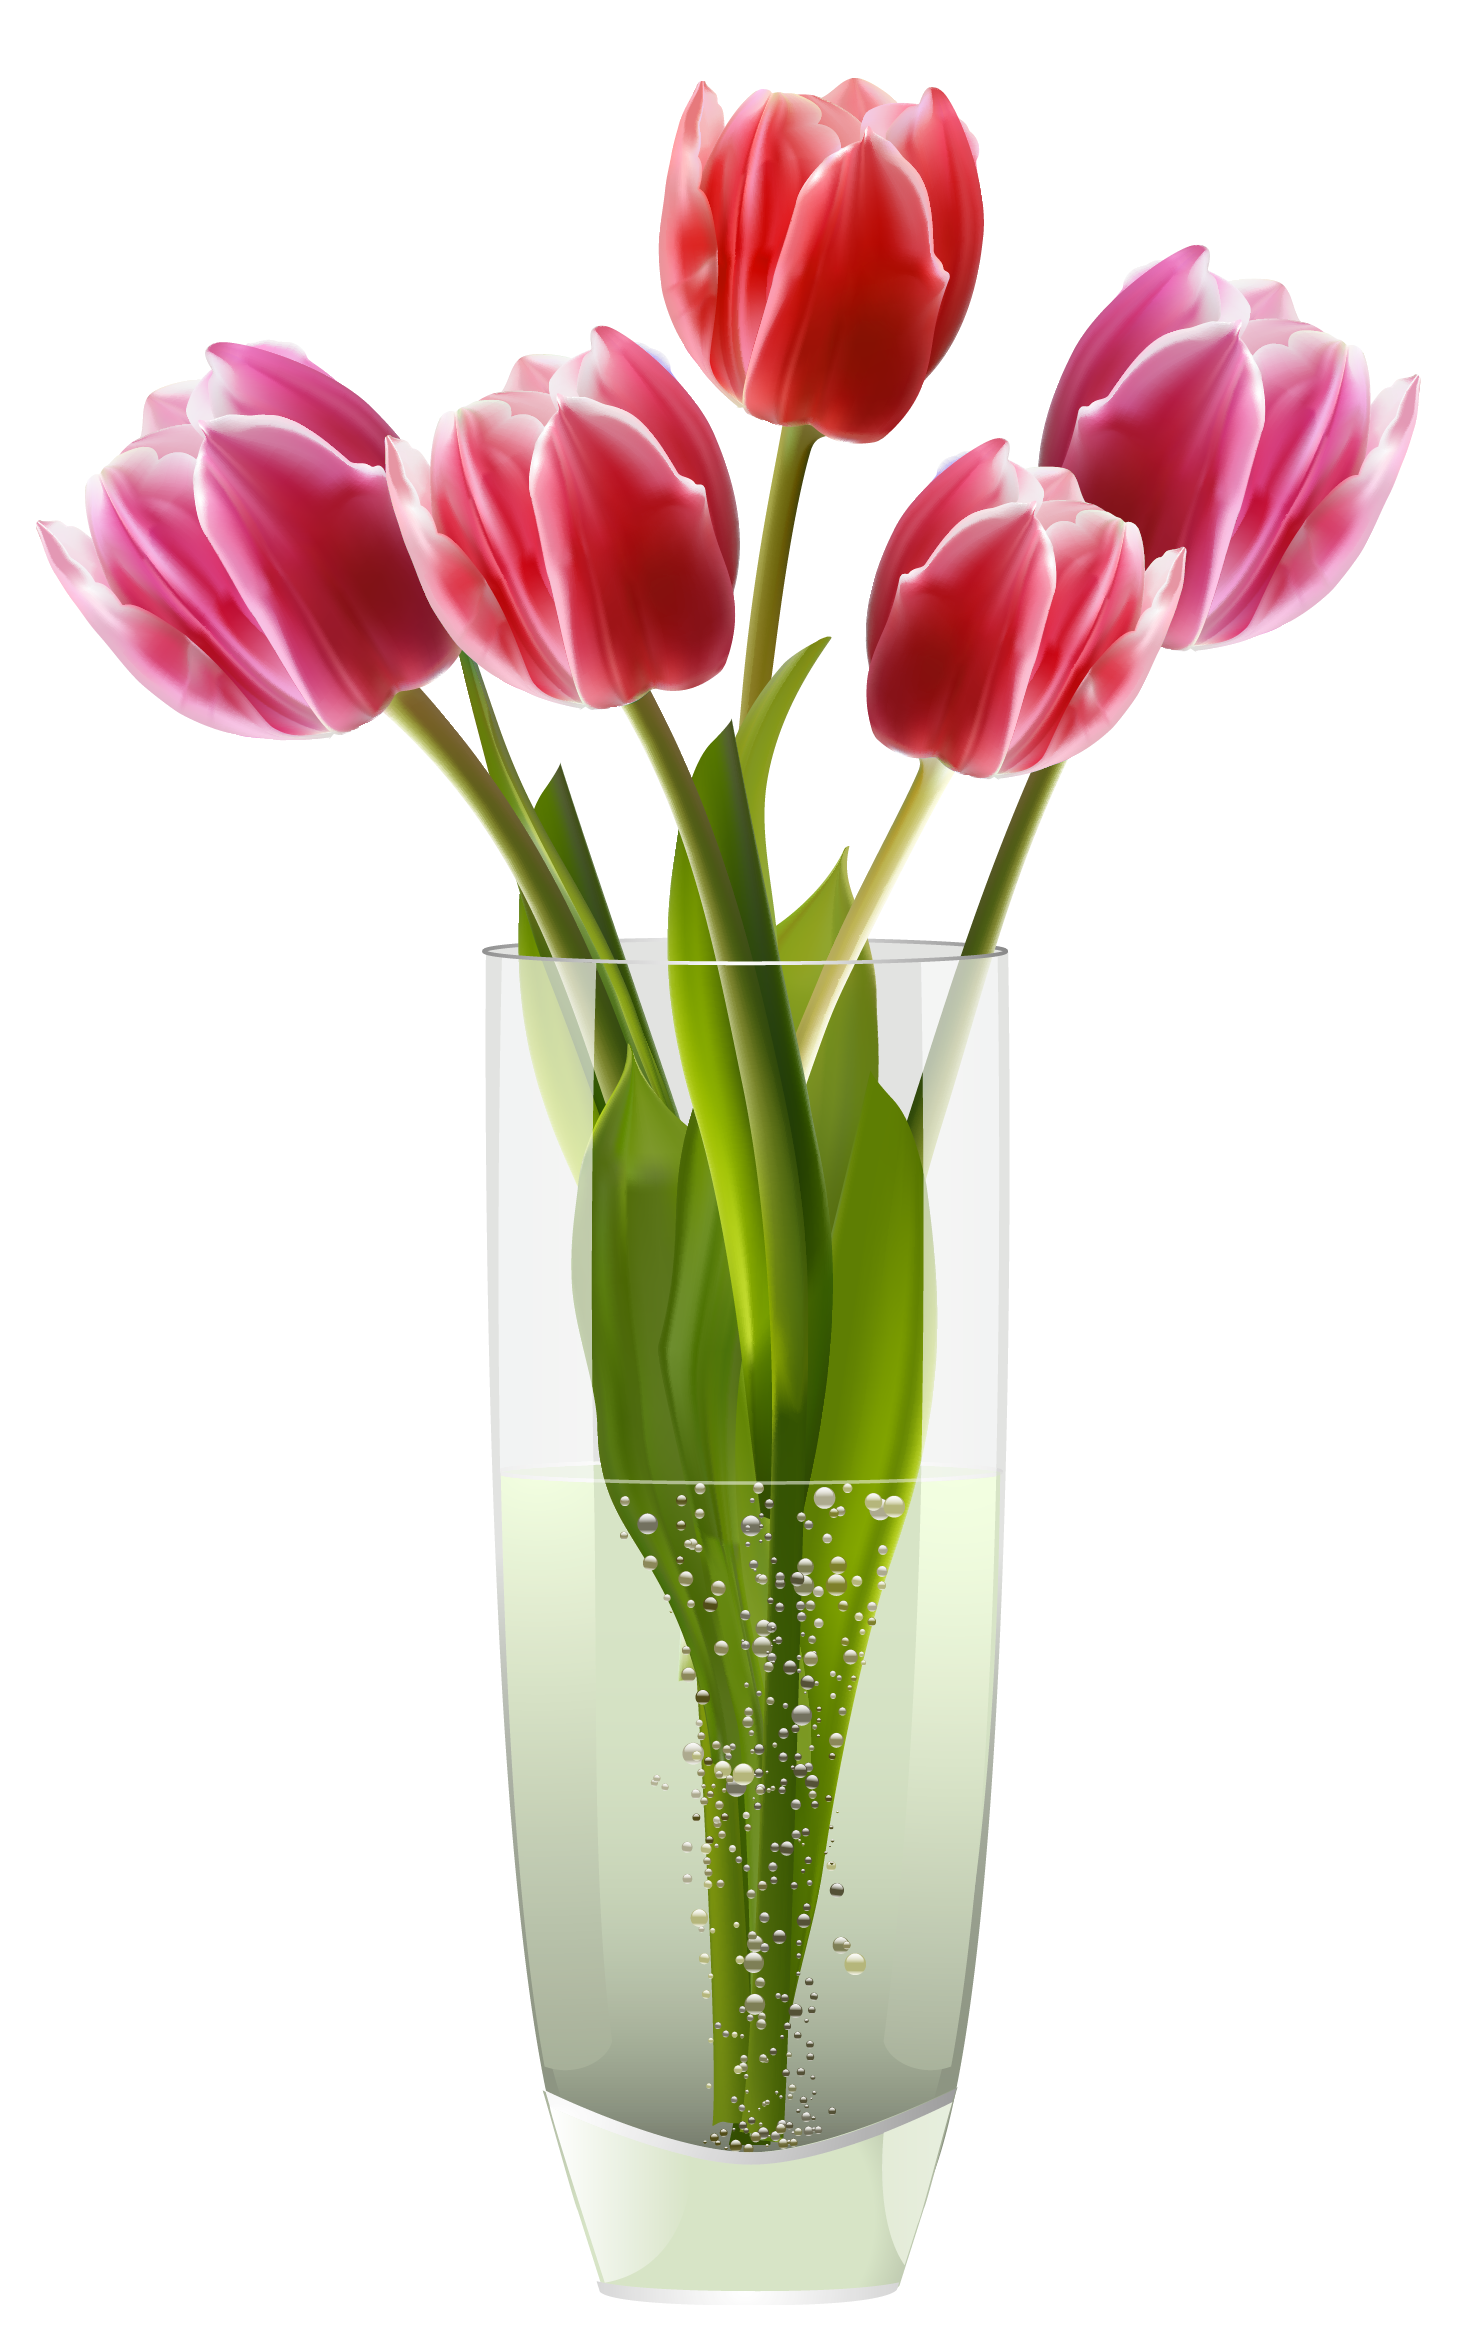 Pink red tulips clipart. Flower vase png